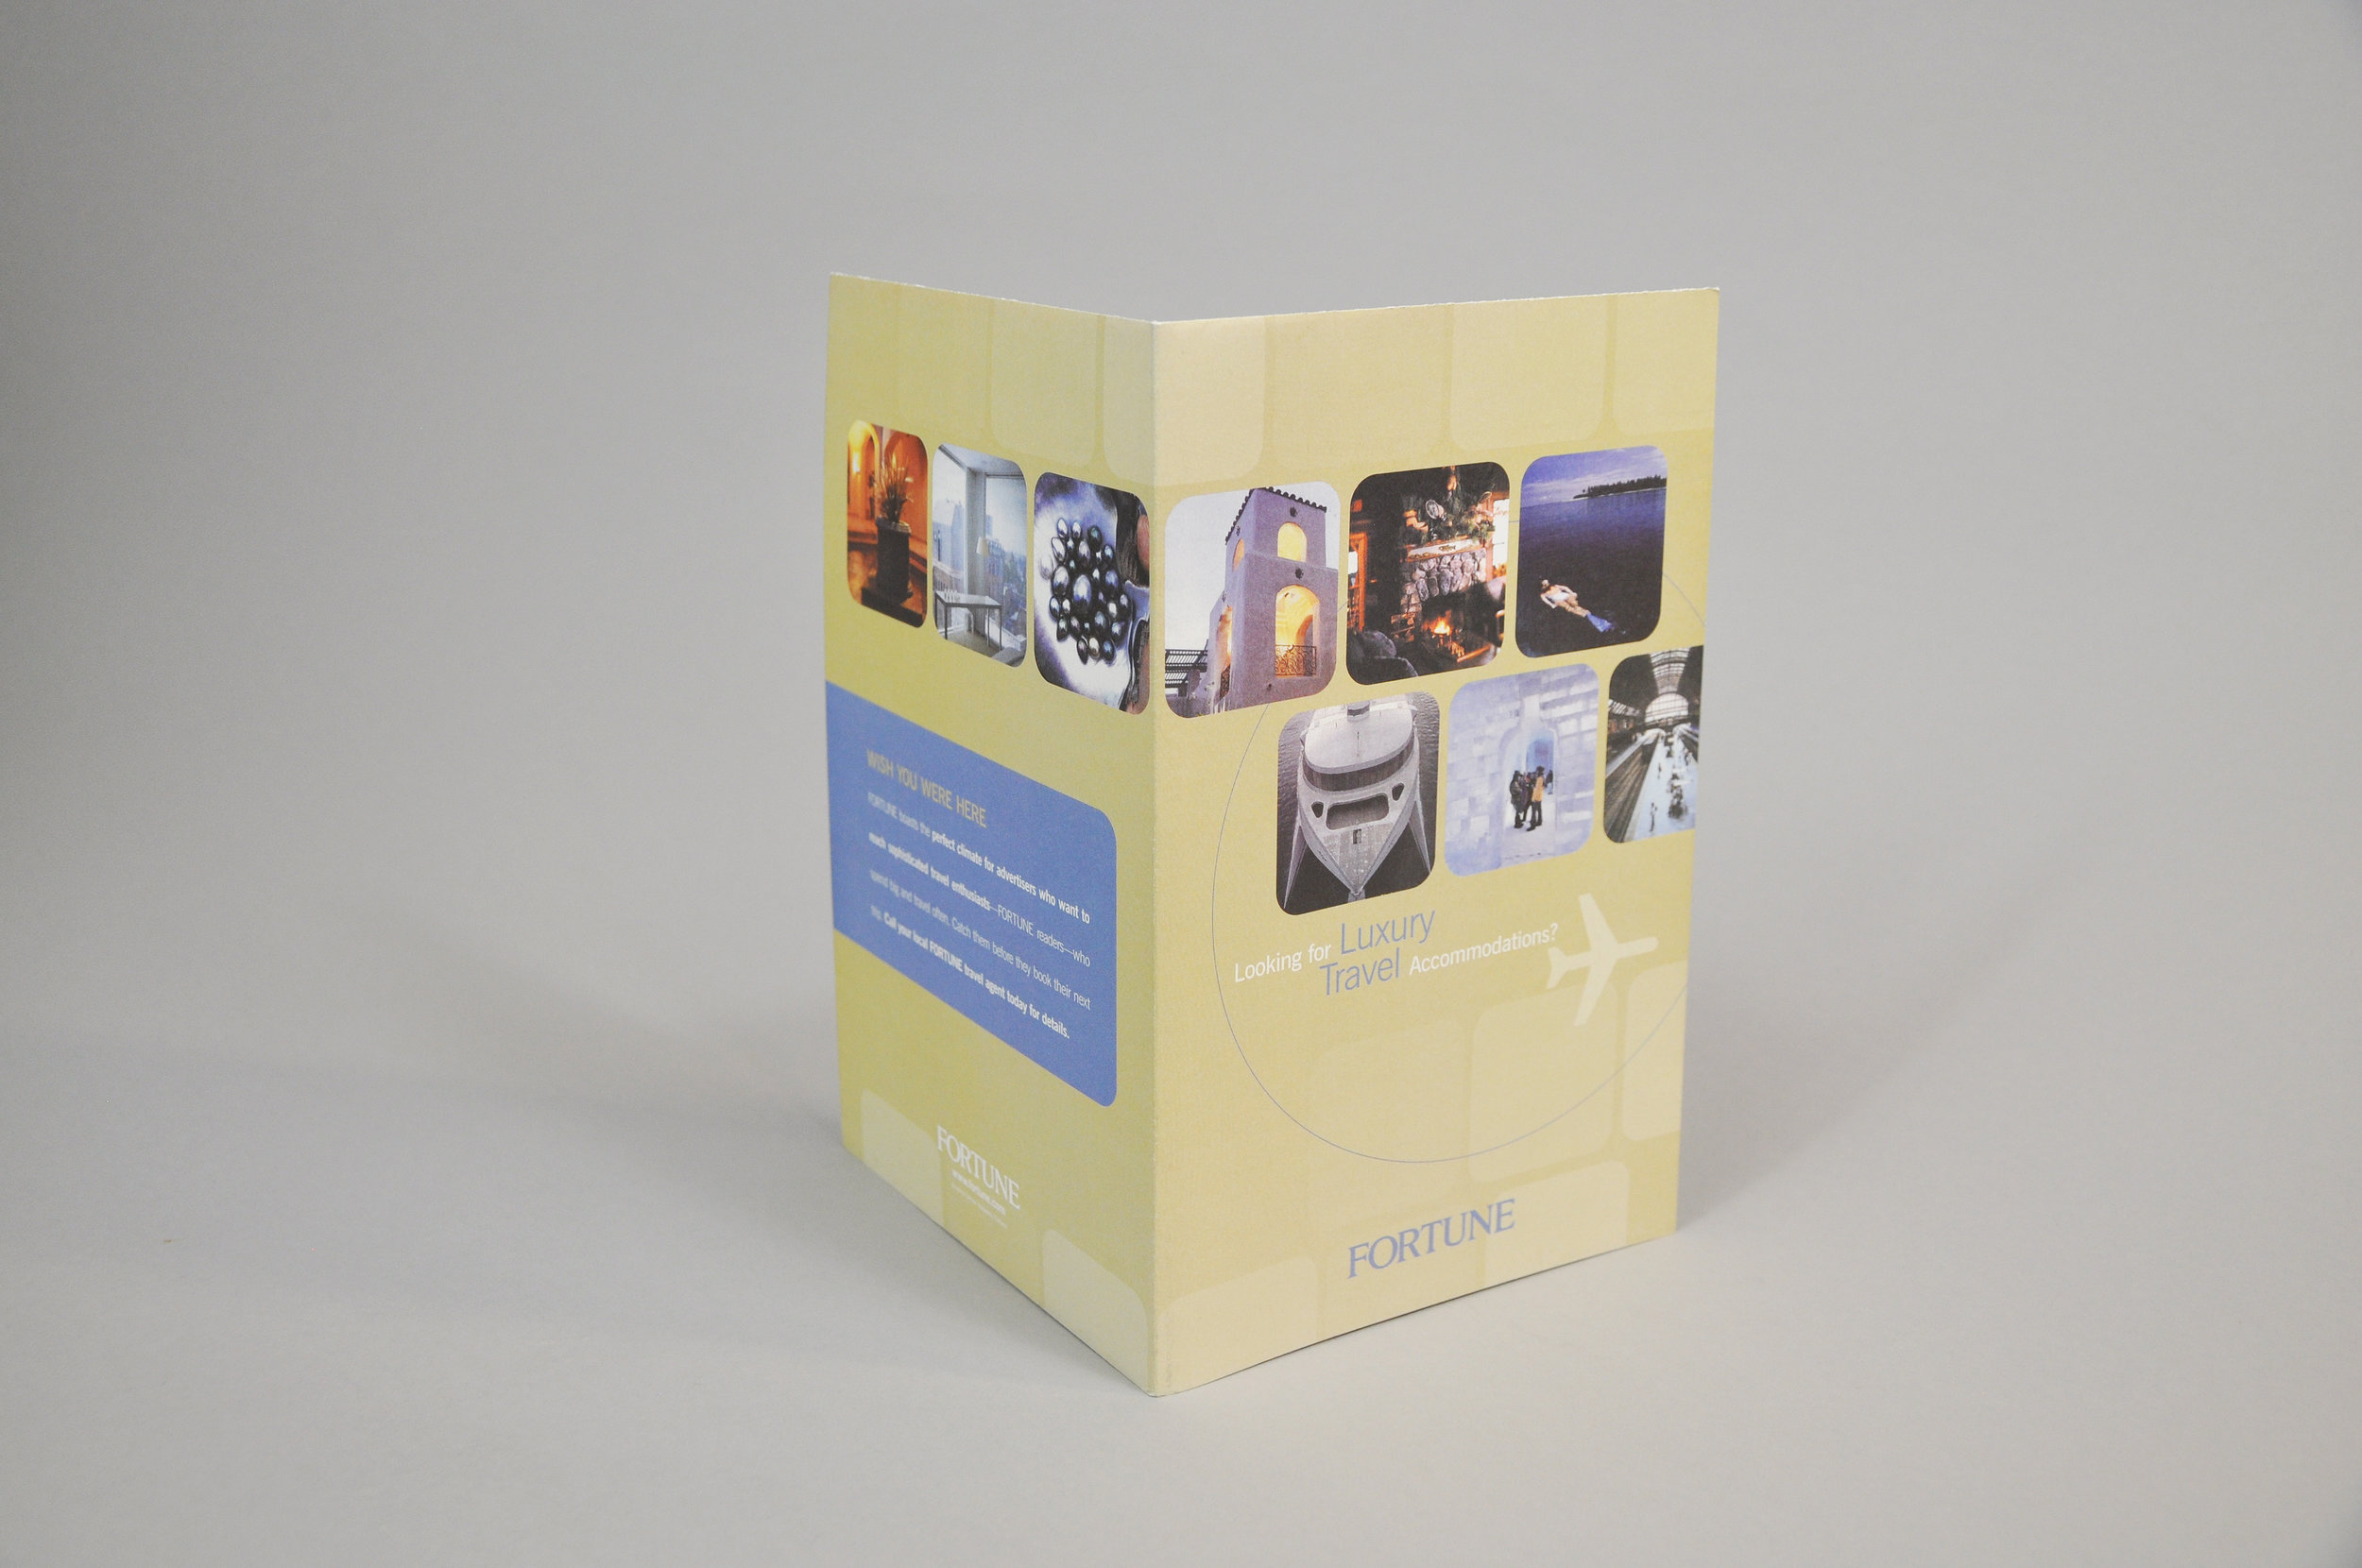 Travel Brochure front and back cover design